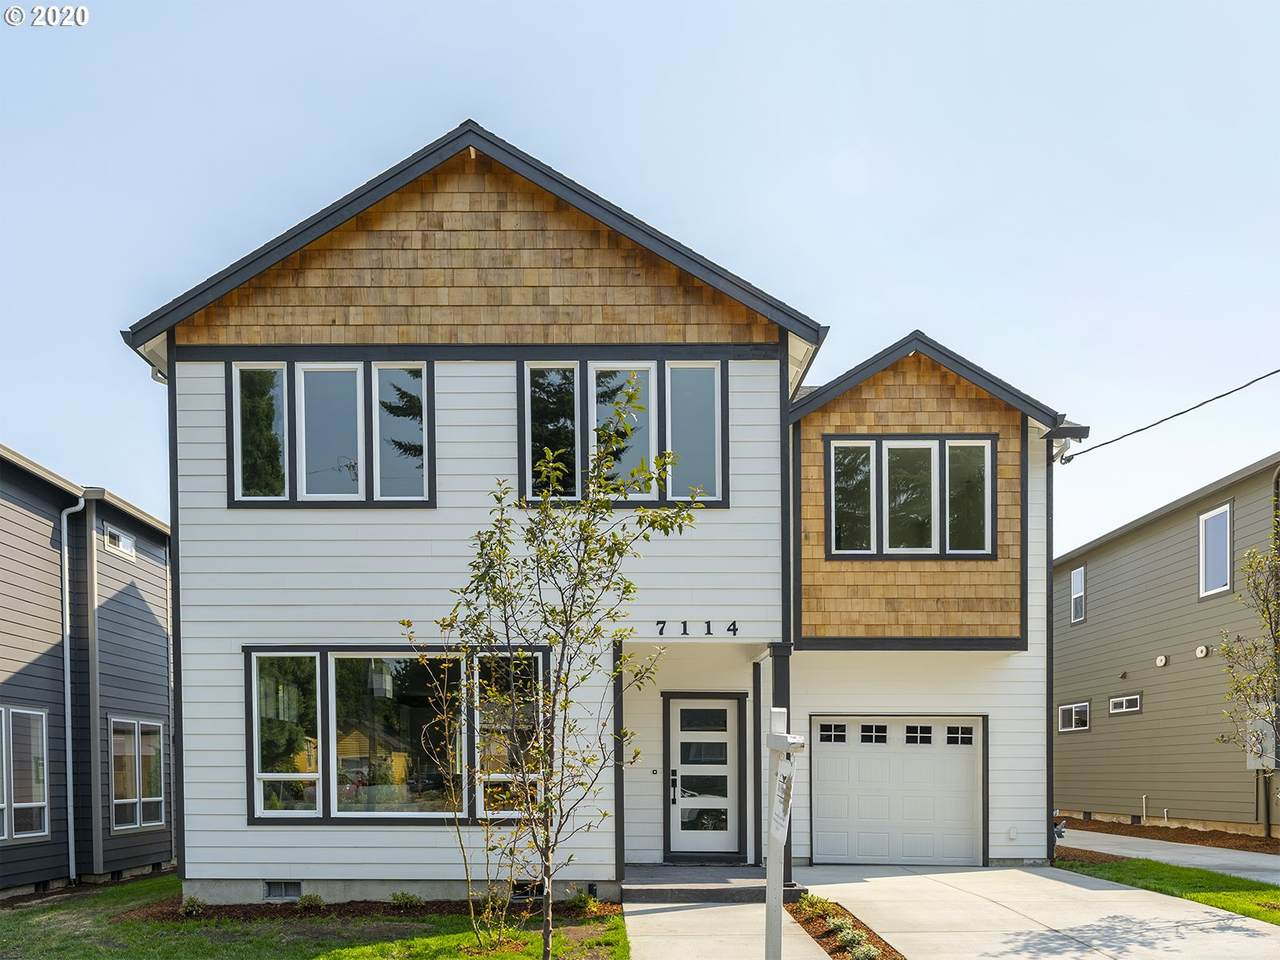 7114 8TH Ave - Photo 1